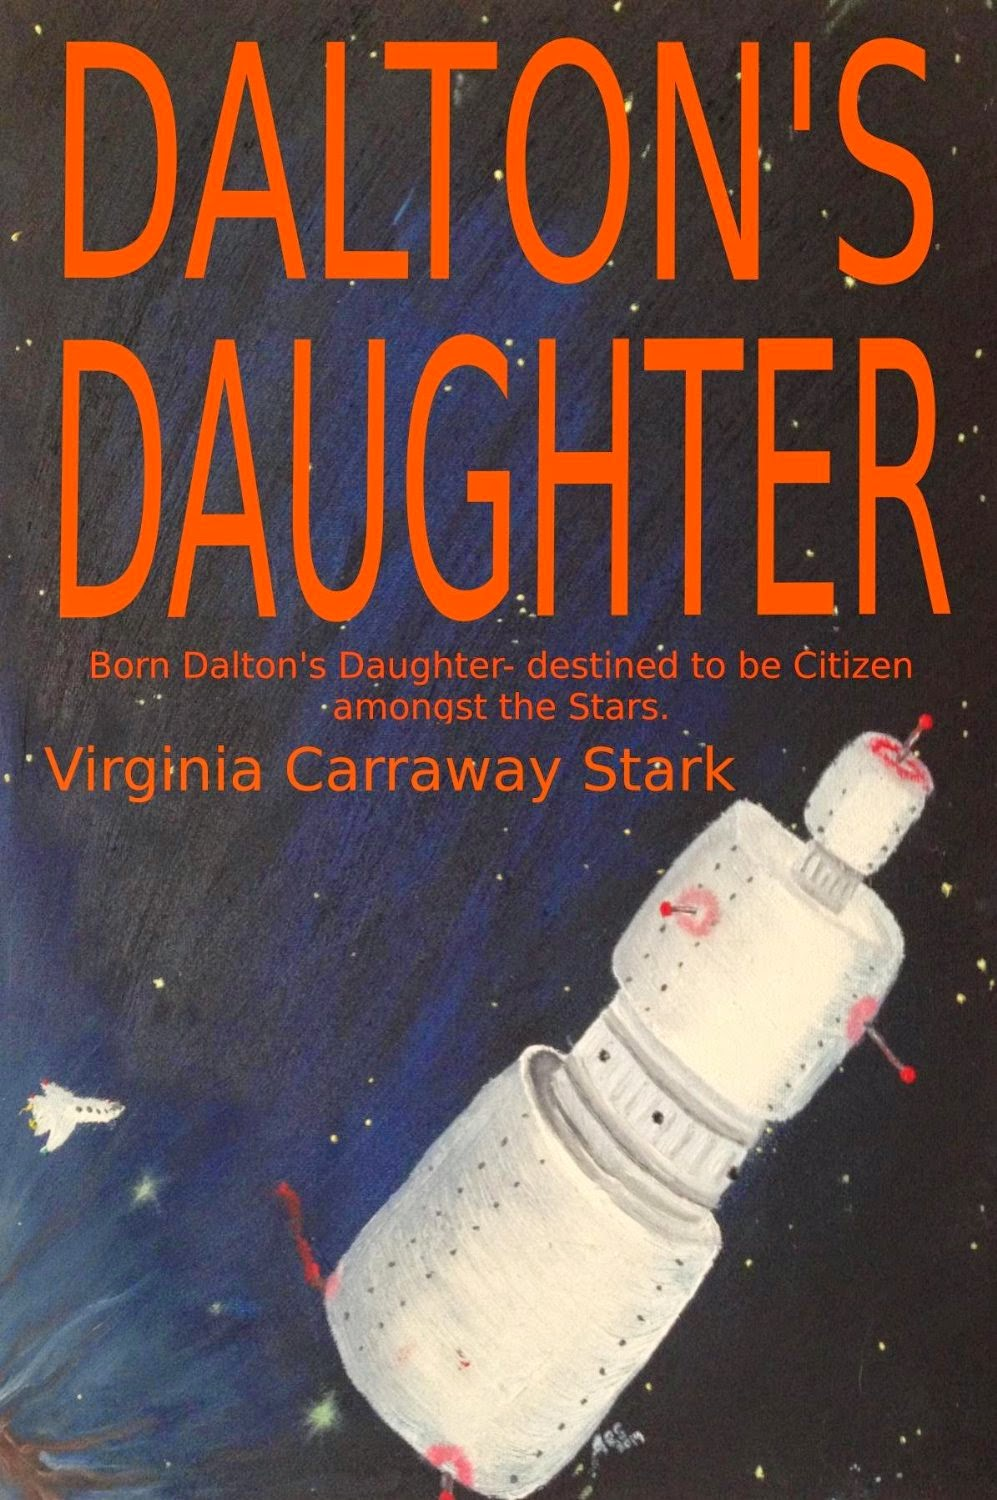 http://www.amazon.com/Daltons-Daughter-Virginia-Carraway-Stark-ebook/dp/B00S5I1F3U/